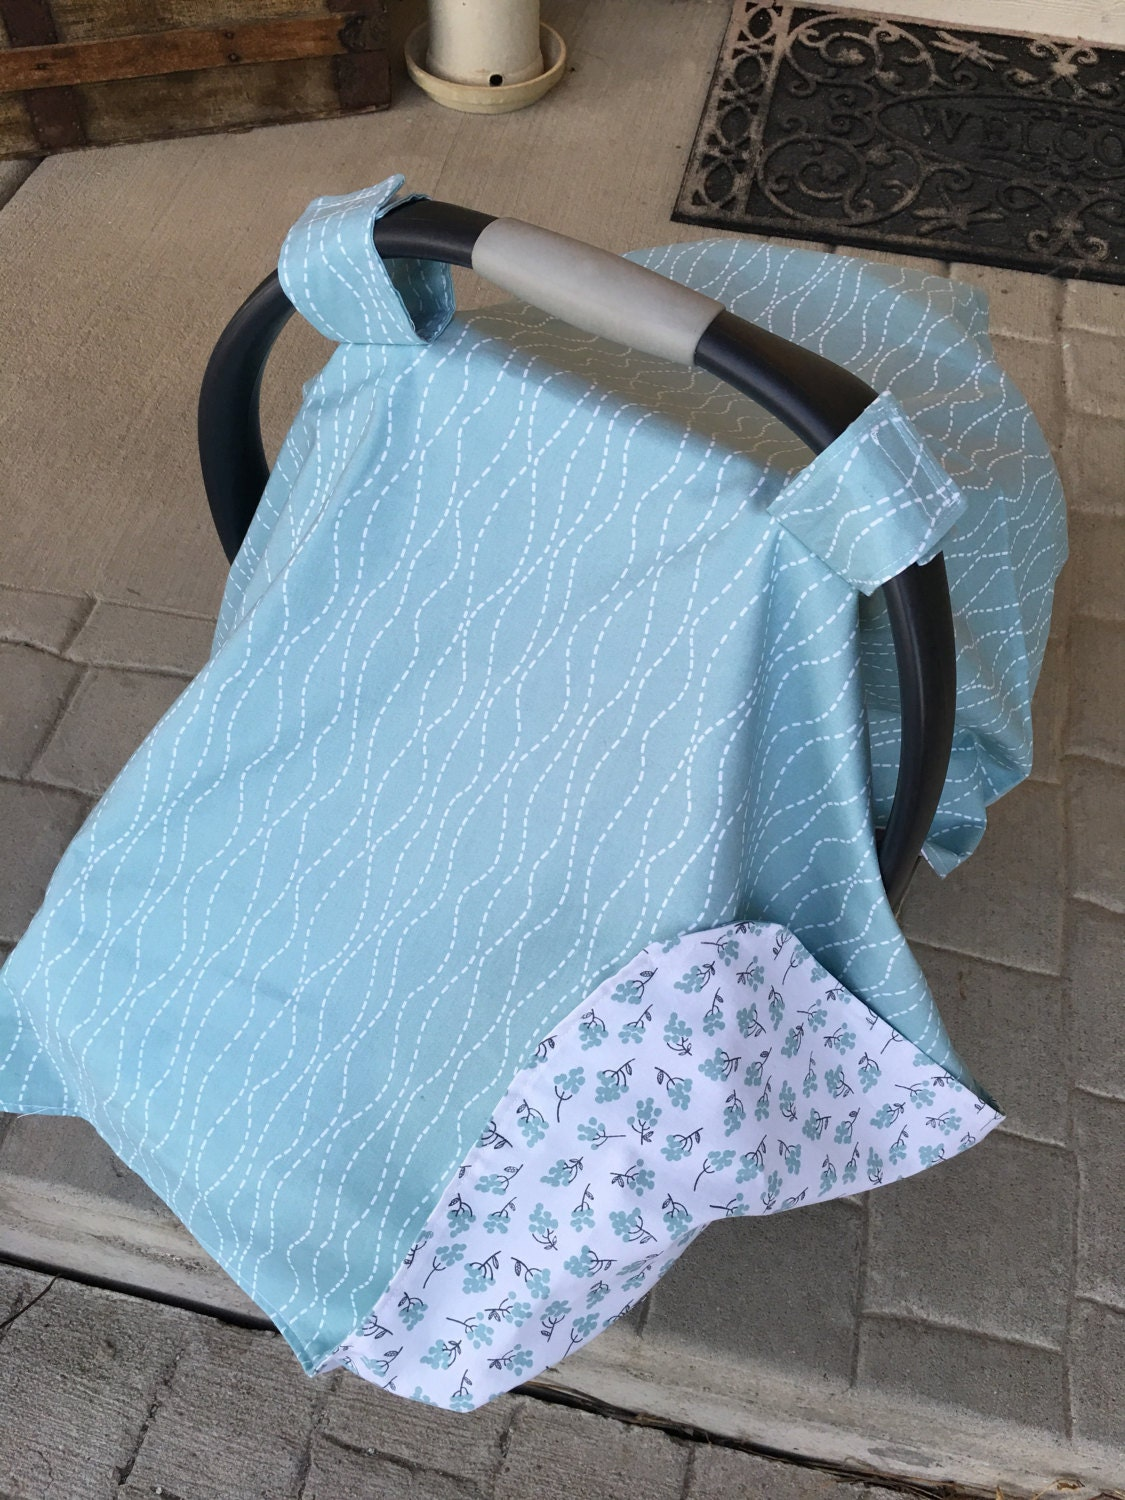 Baby Car Seat Cover - Baby Car Seat Canopy - Baby Shower Gift